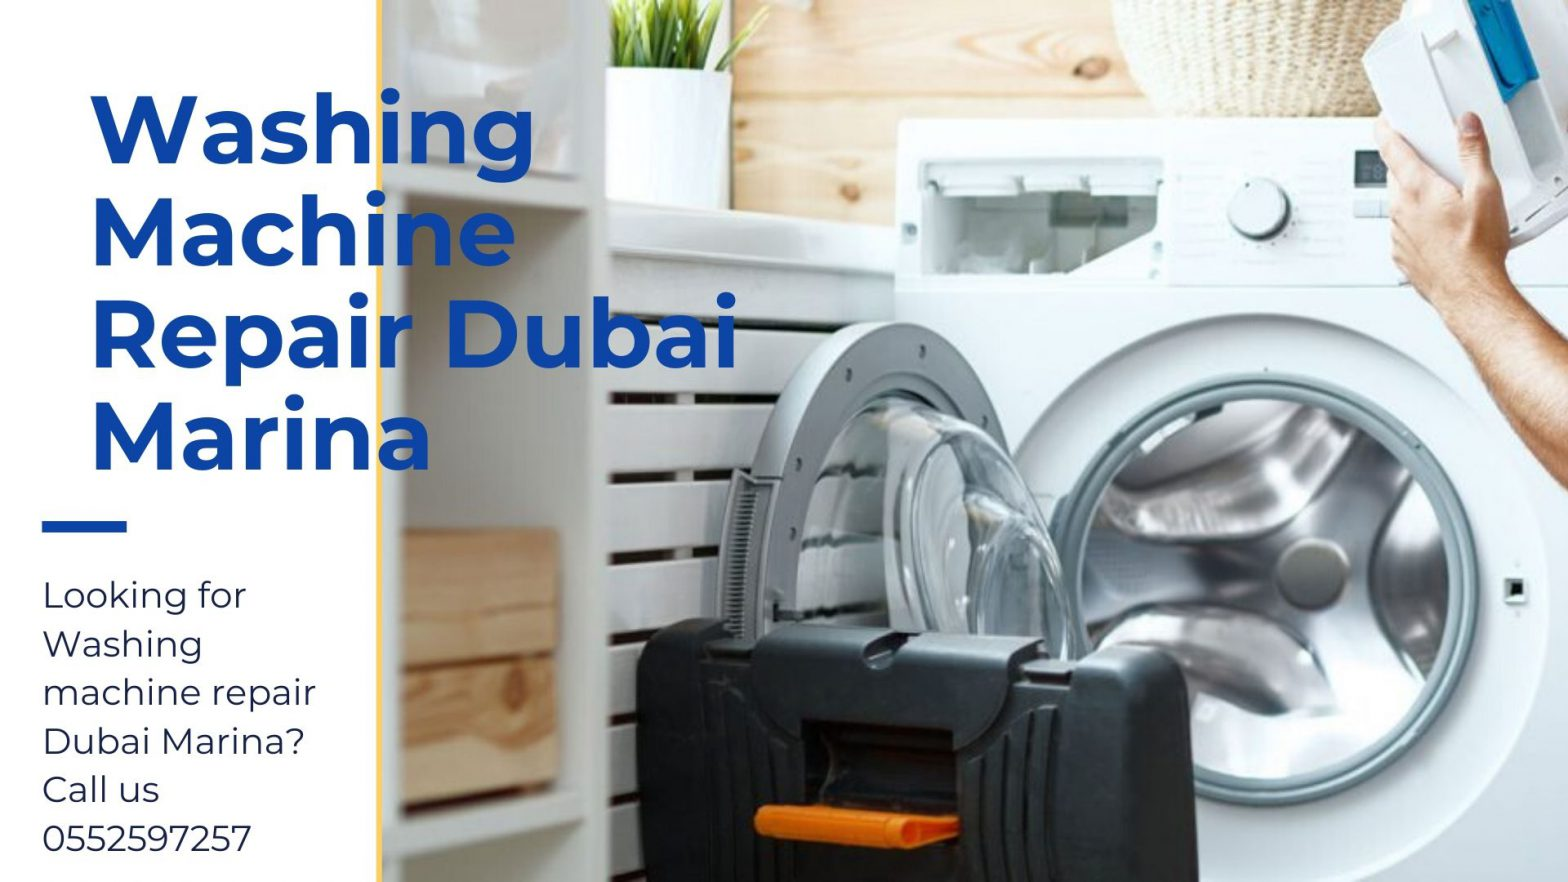 Washing machine repair Dubai marina